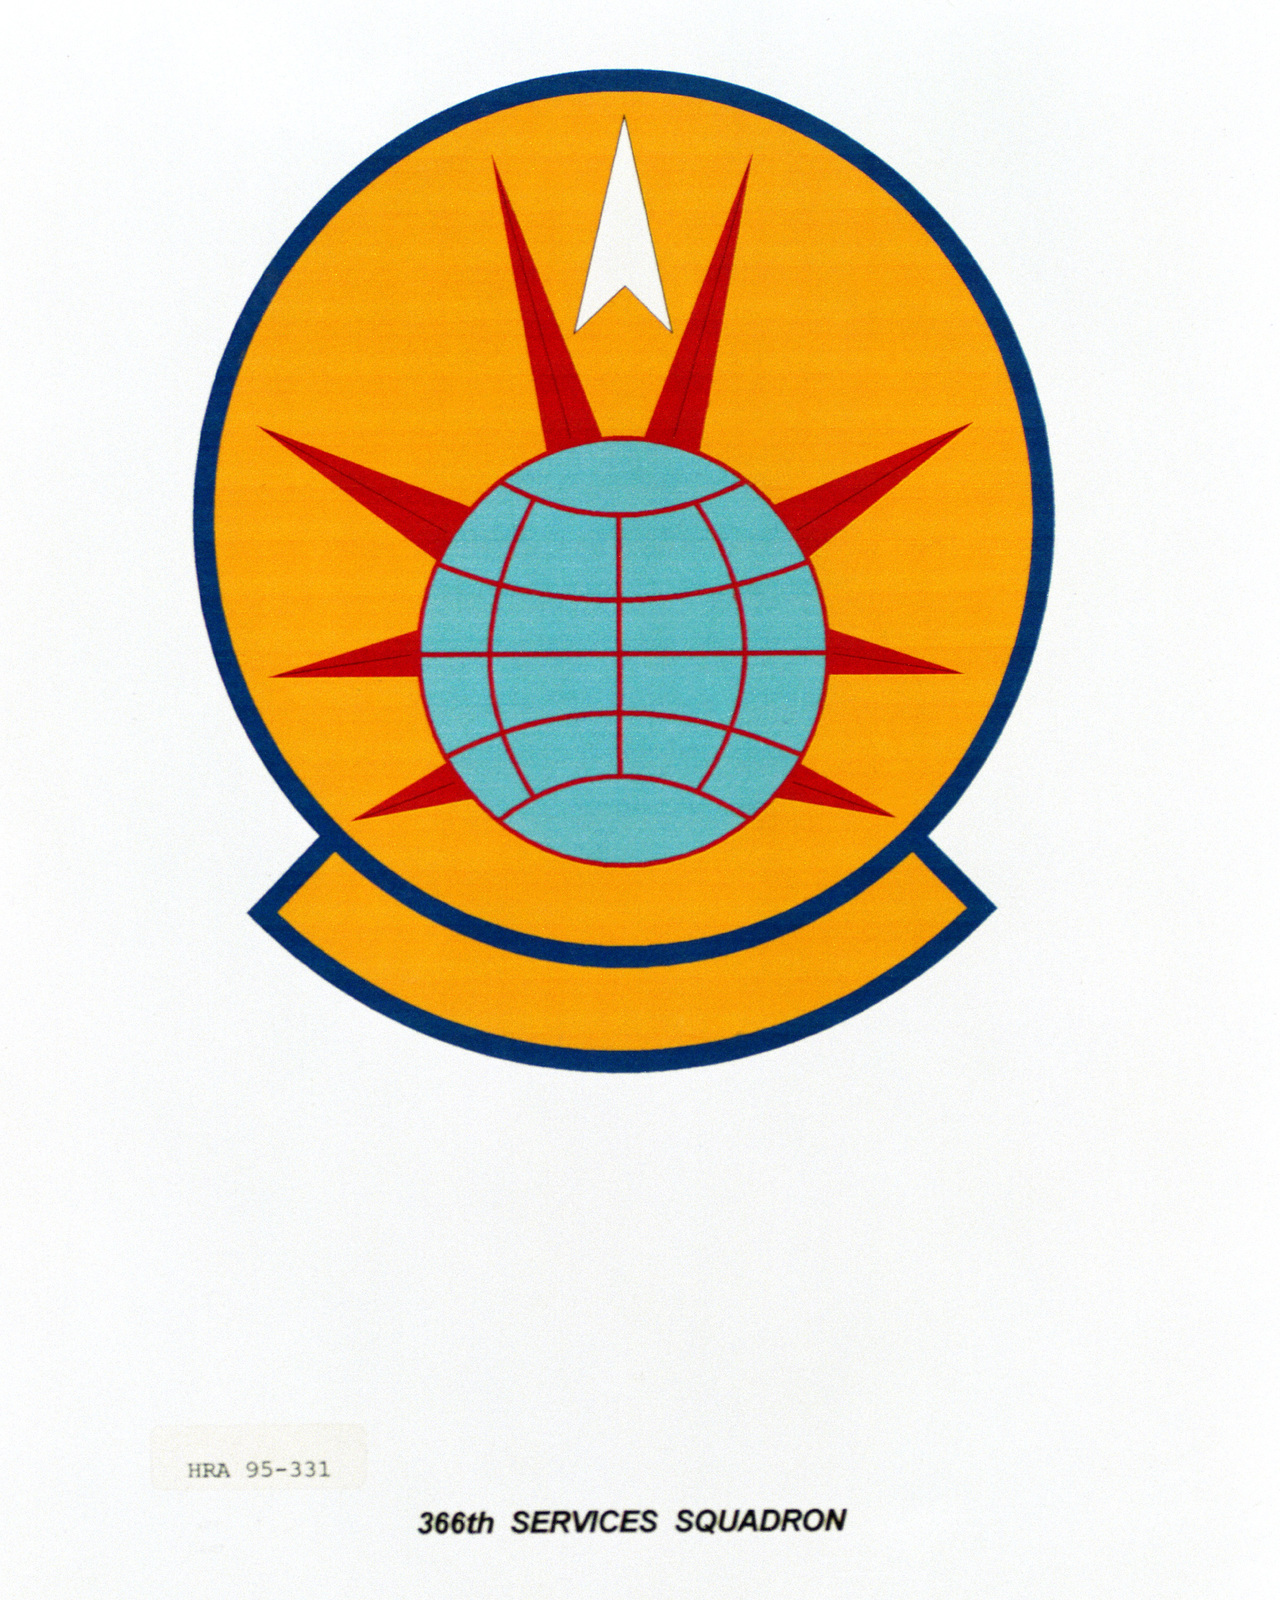 Approved Insignia for the 366th Services Squadron Exact Date Shot Unknown